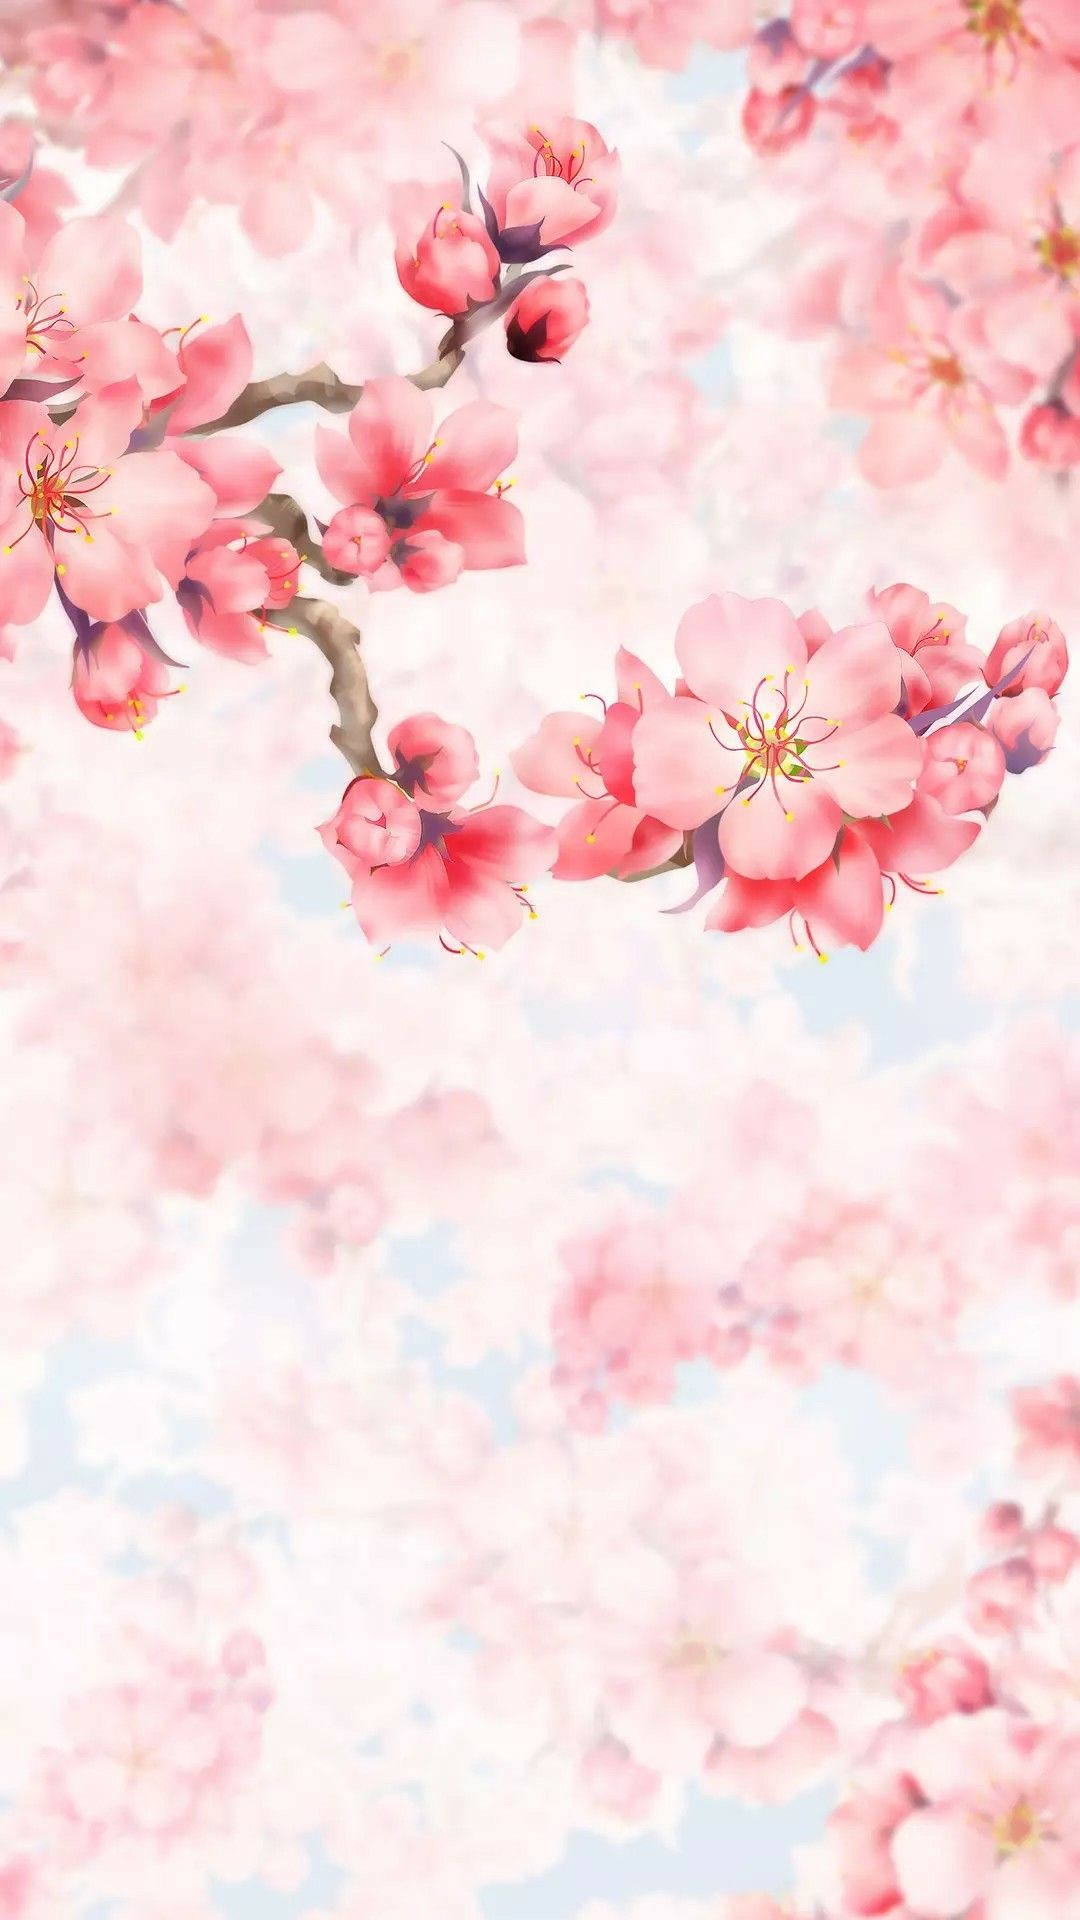 So Prettyp Flower Background Wallpaper Floral Wallpaper Flower Wallpaper